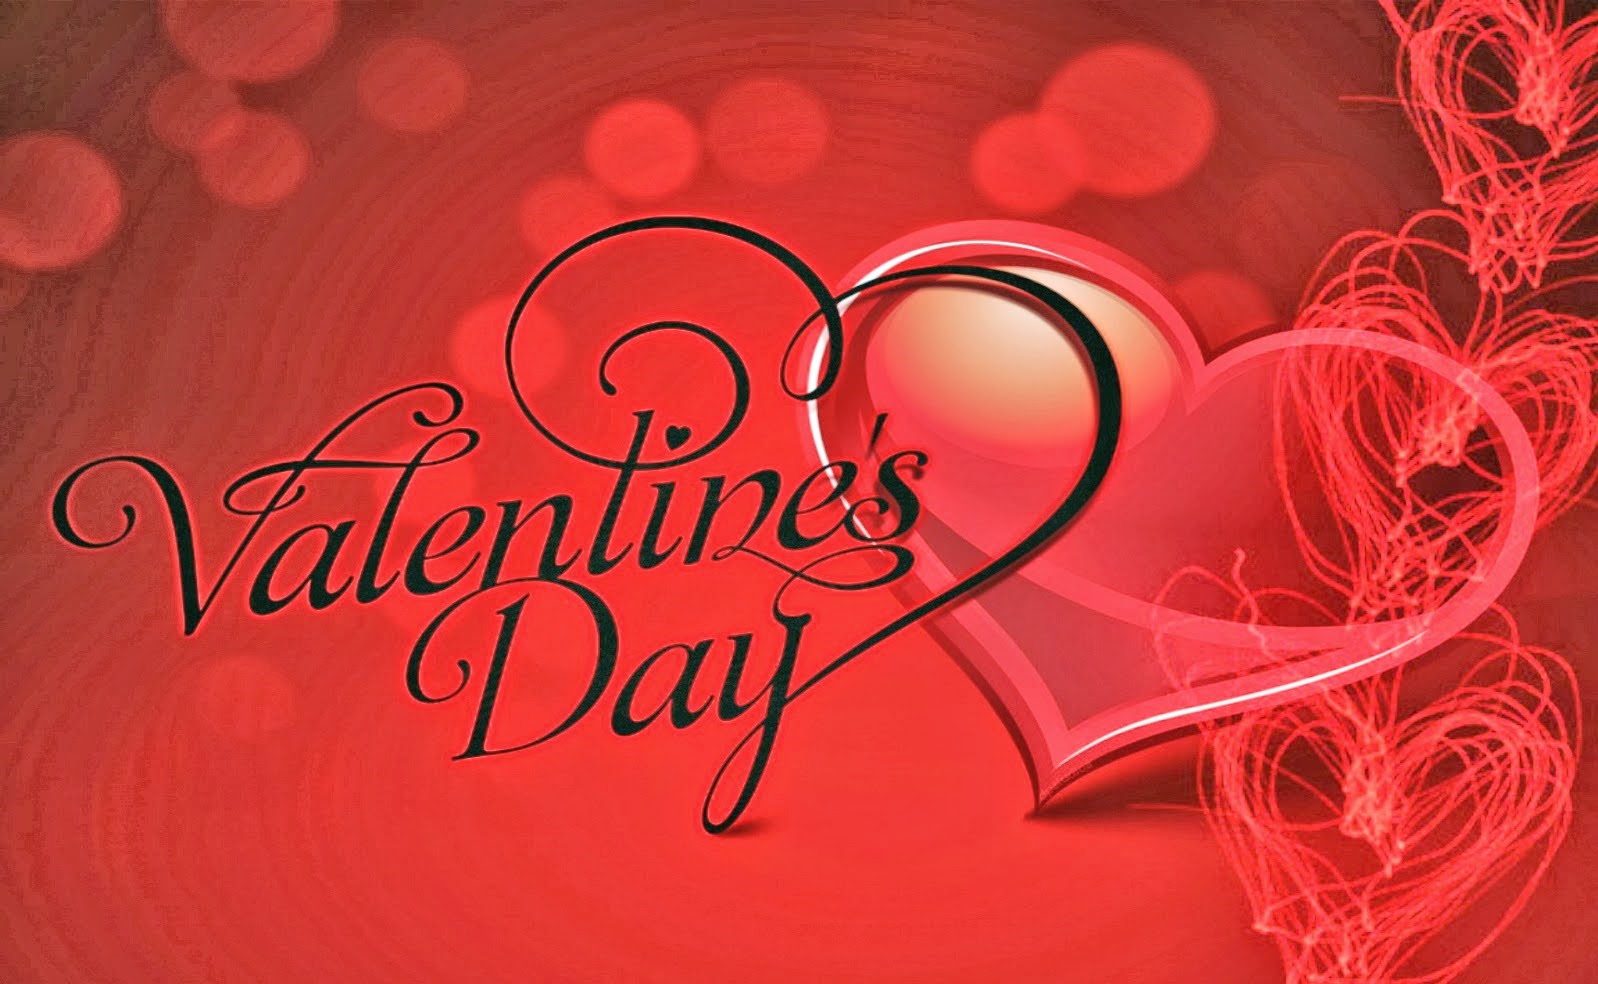 10 Special Valentines Day Cards for Friends Him Her Lovers and